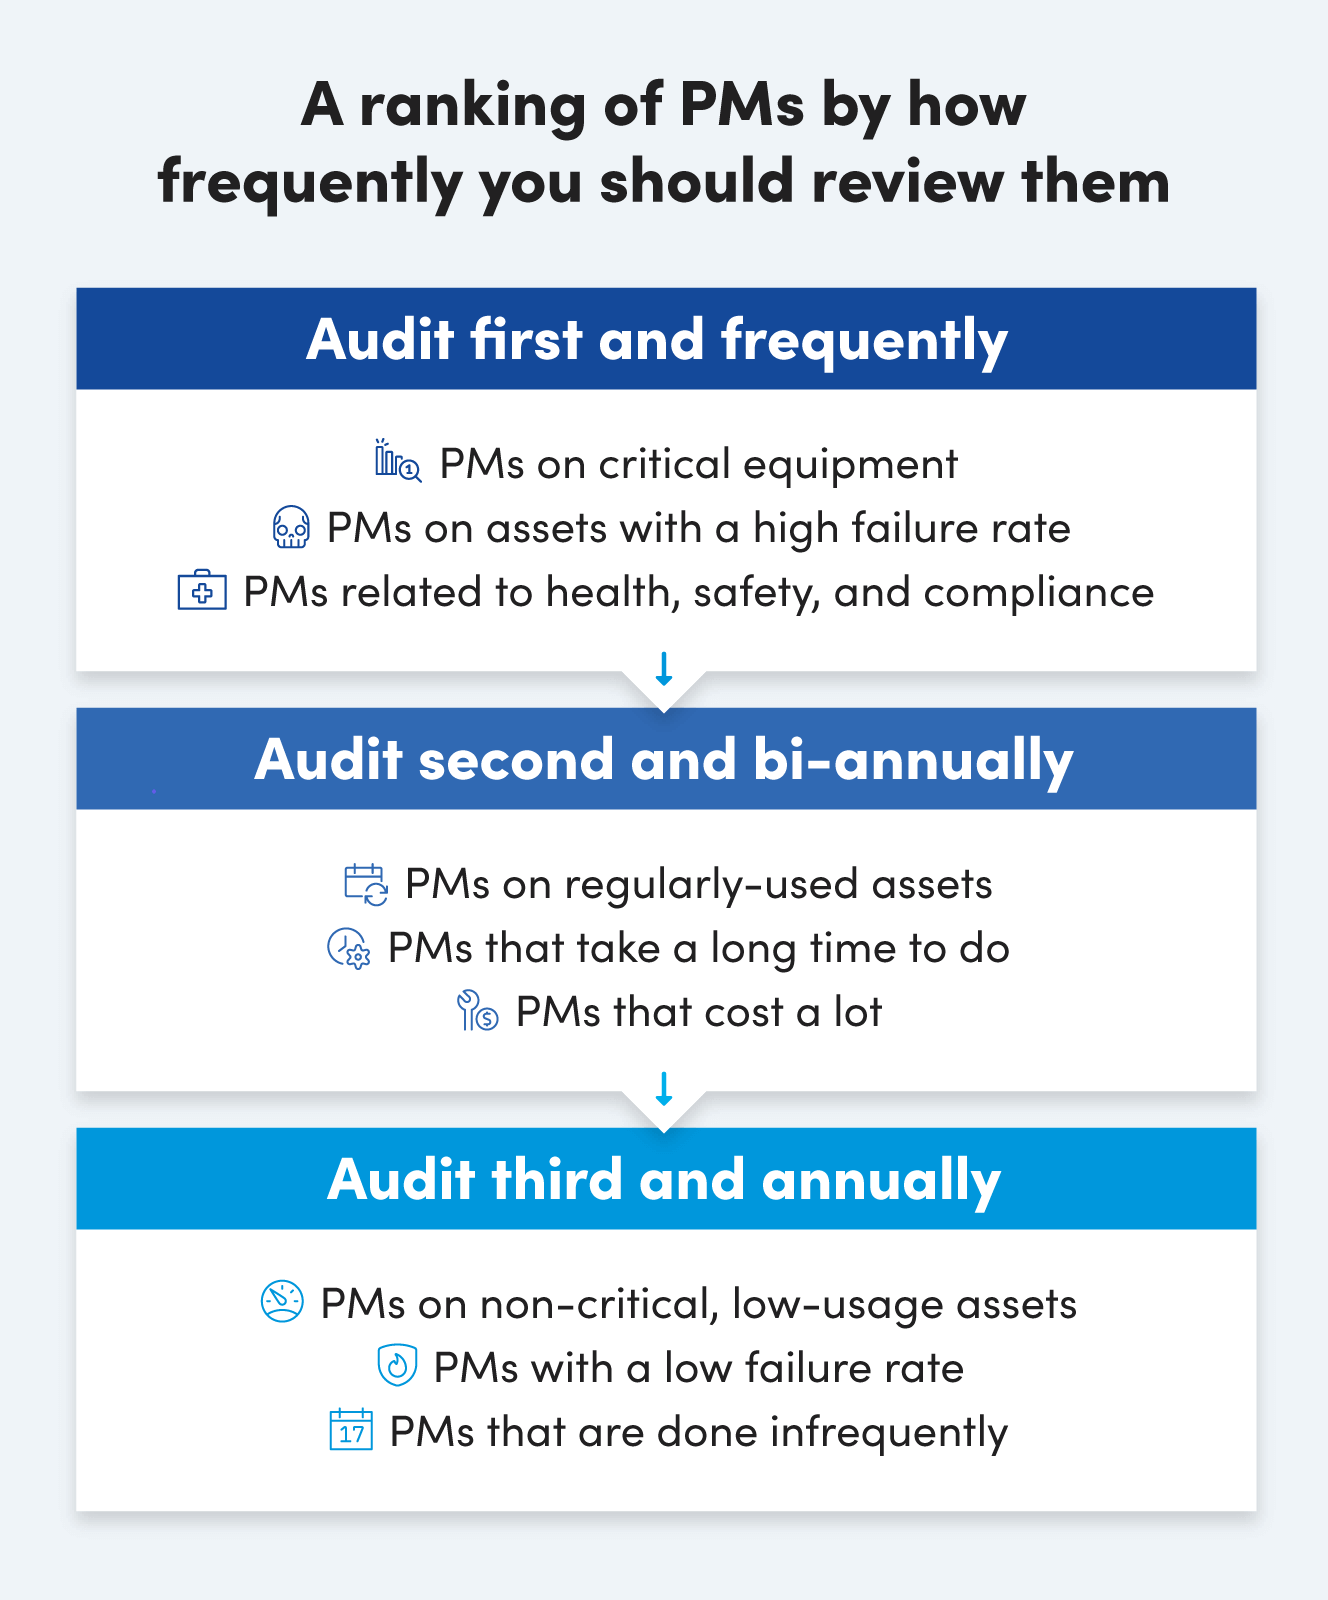 A ranking of PMs by how frequently you should review them